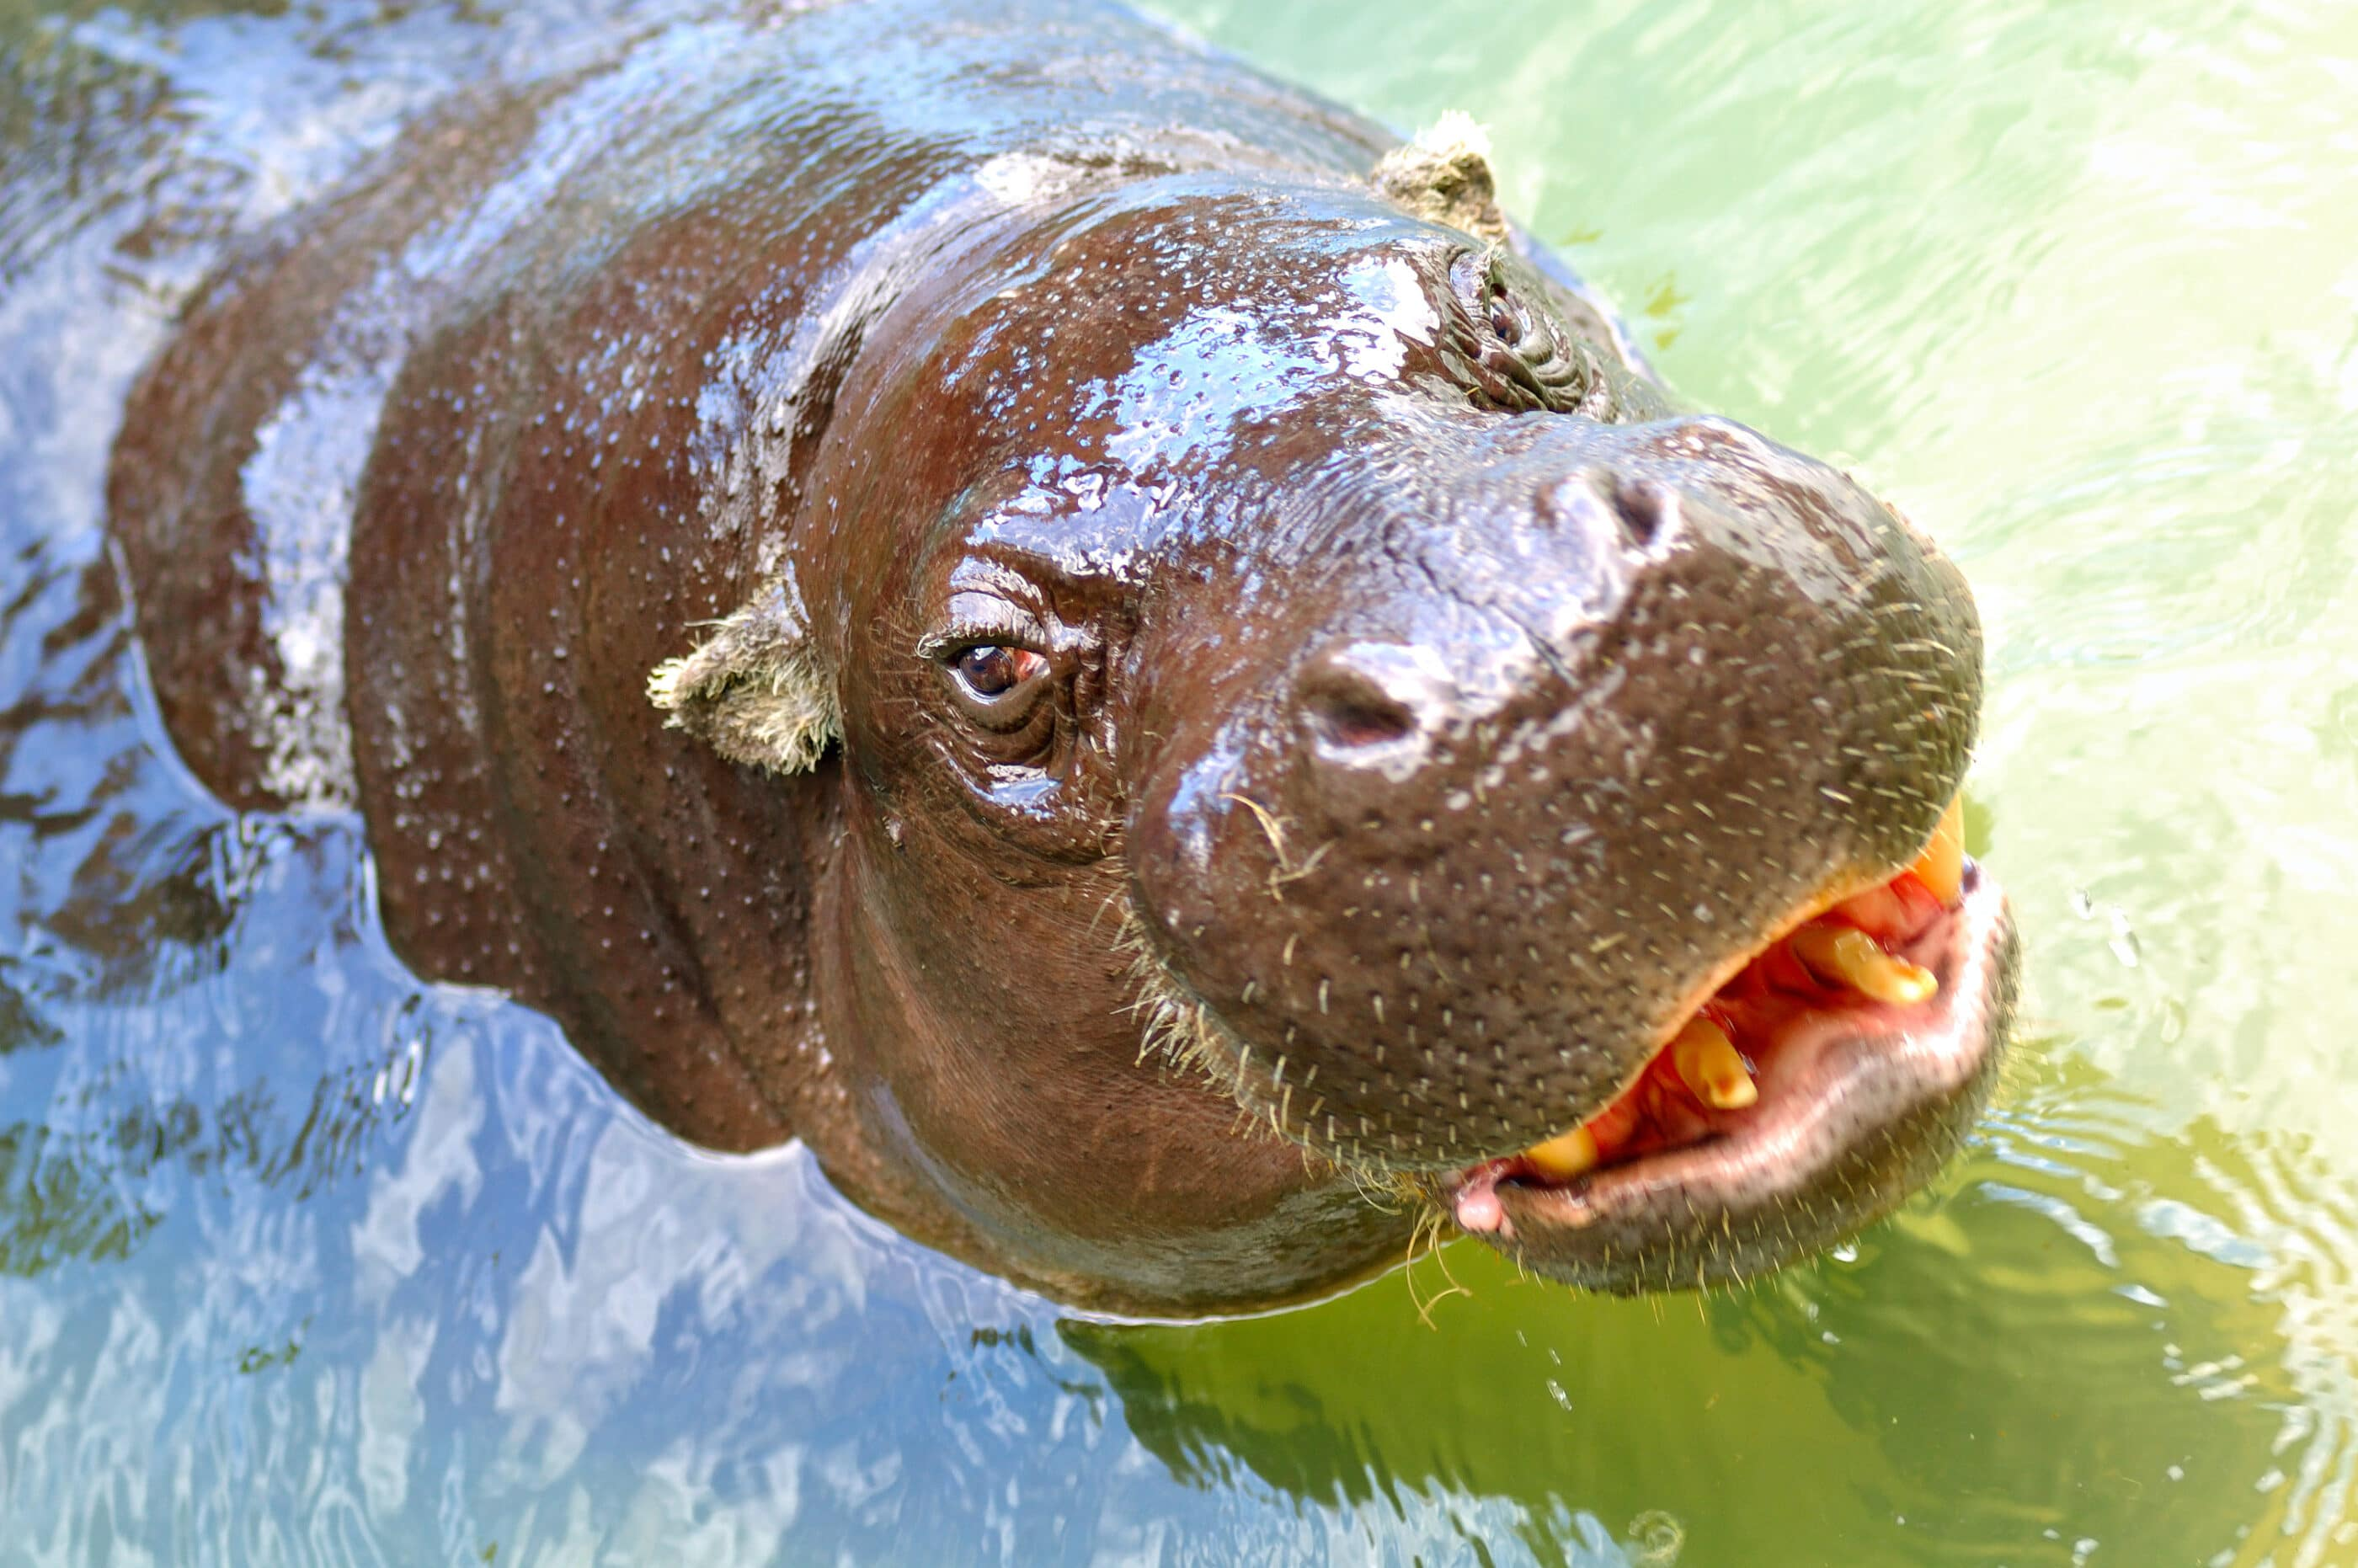 A pygmy hippo looks directly into the camera while in the water.